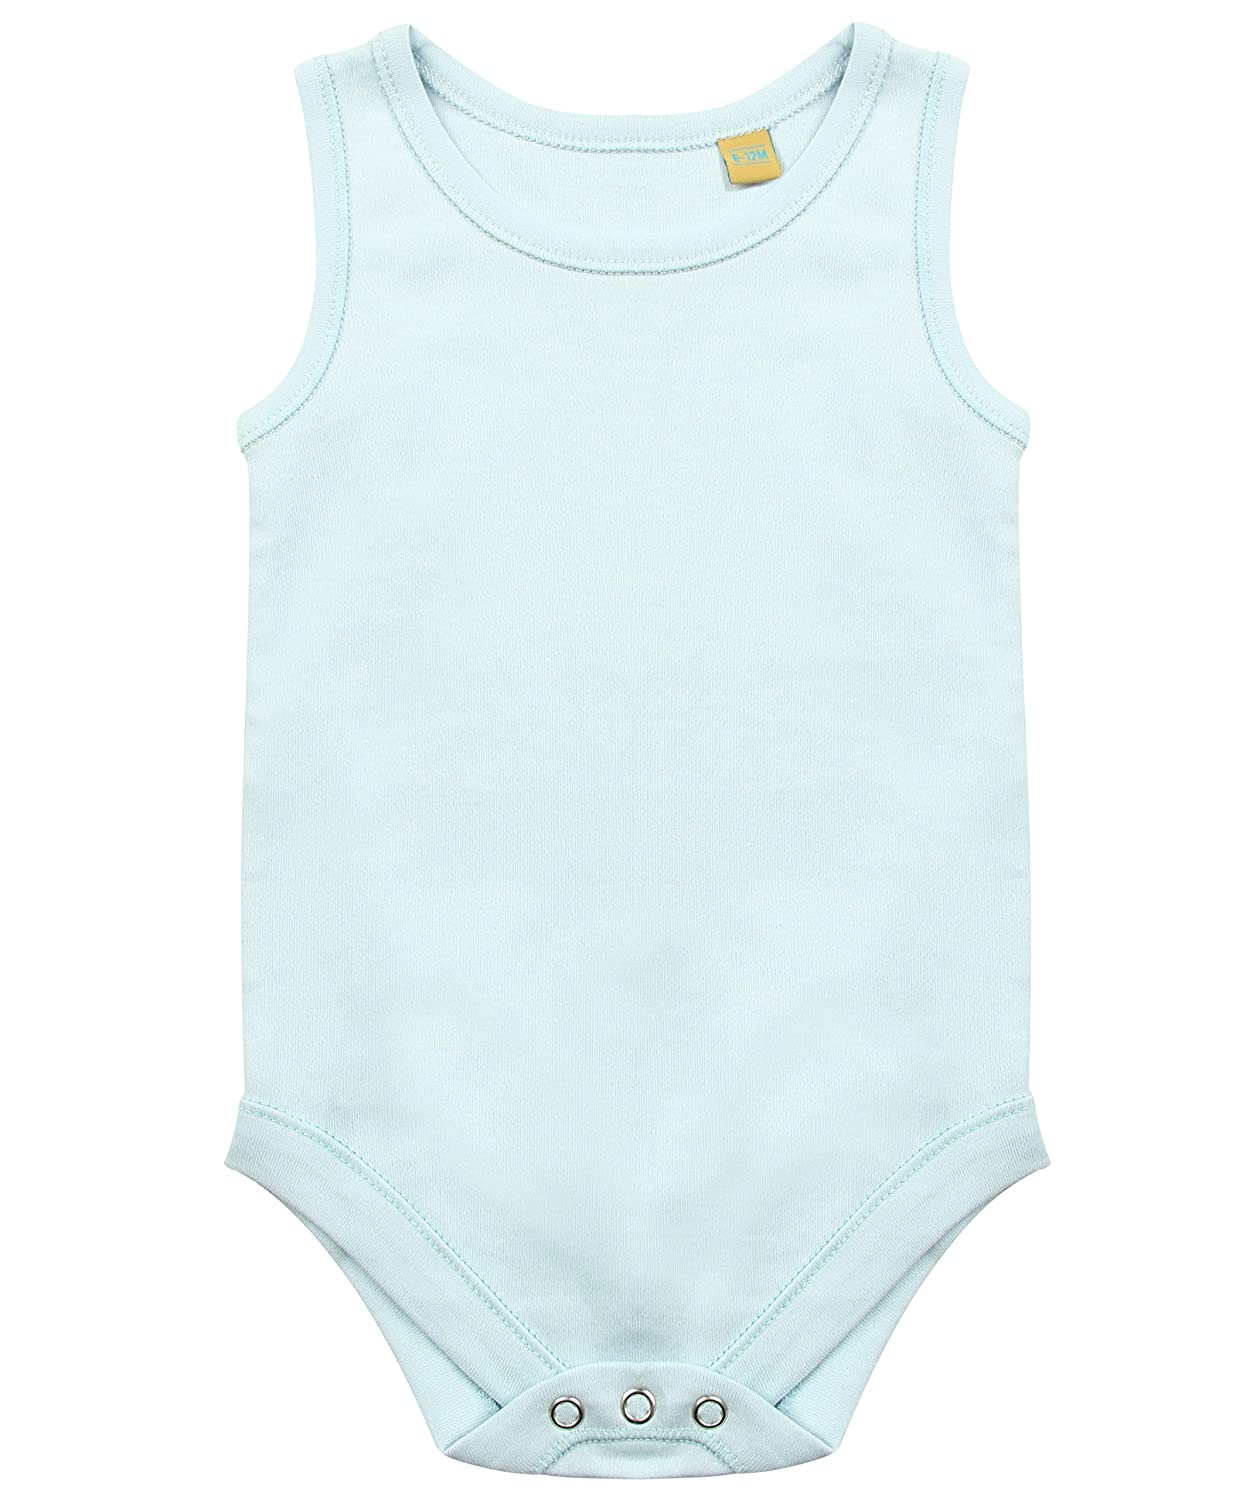 Larkwood Plain Baby Body Vest